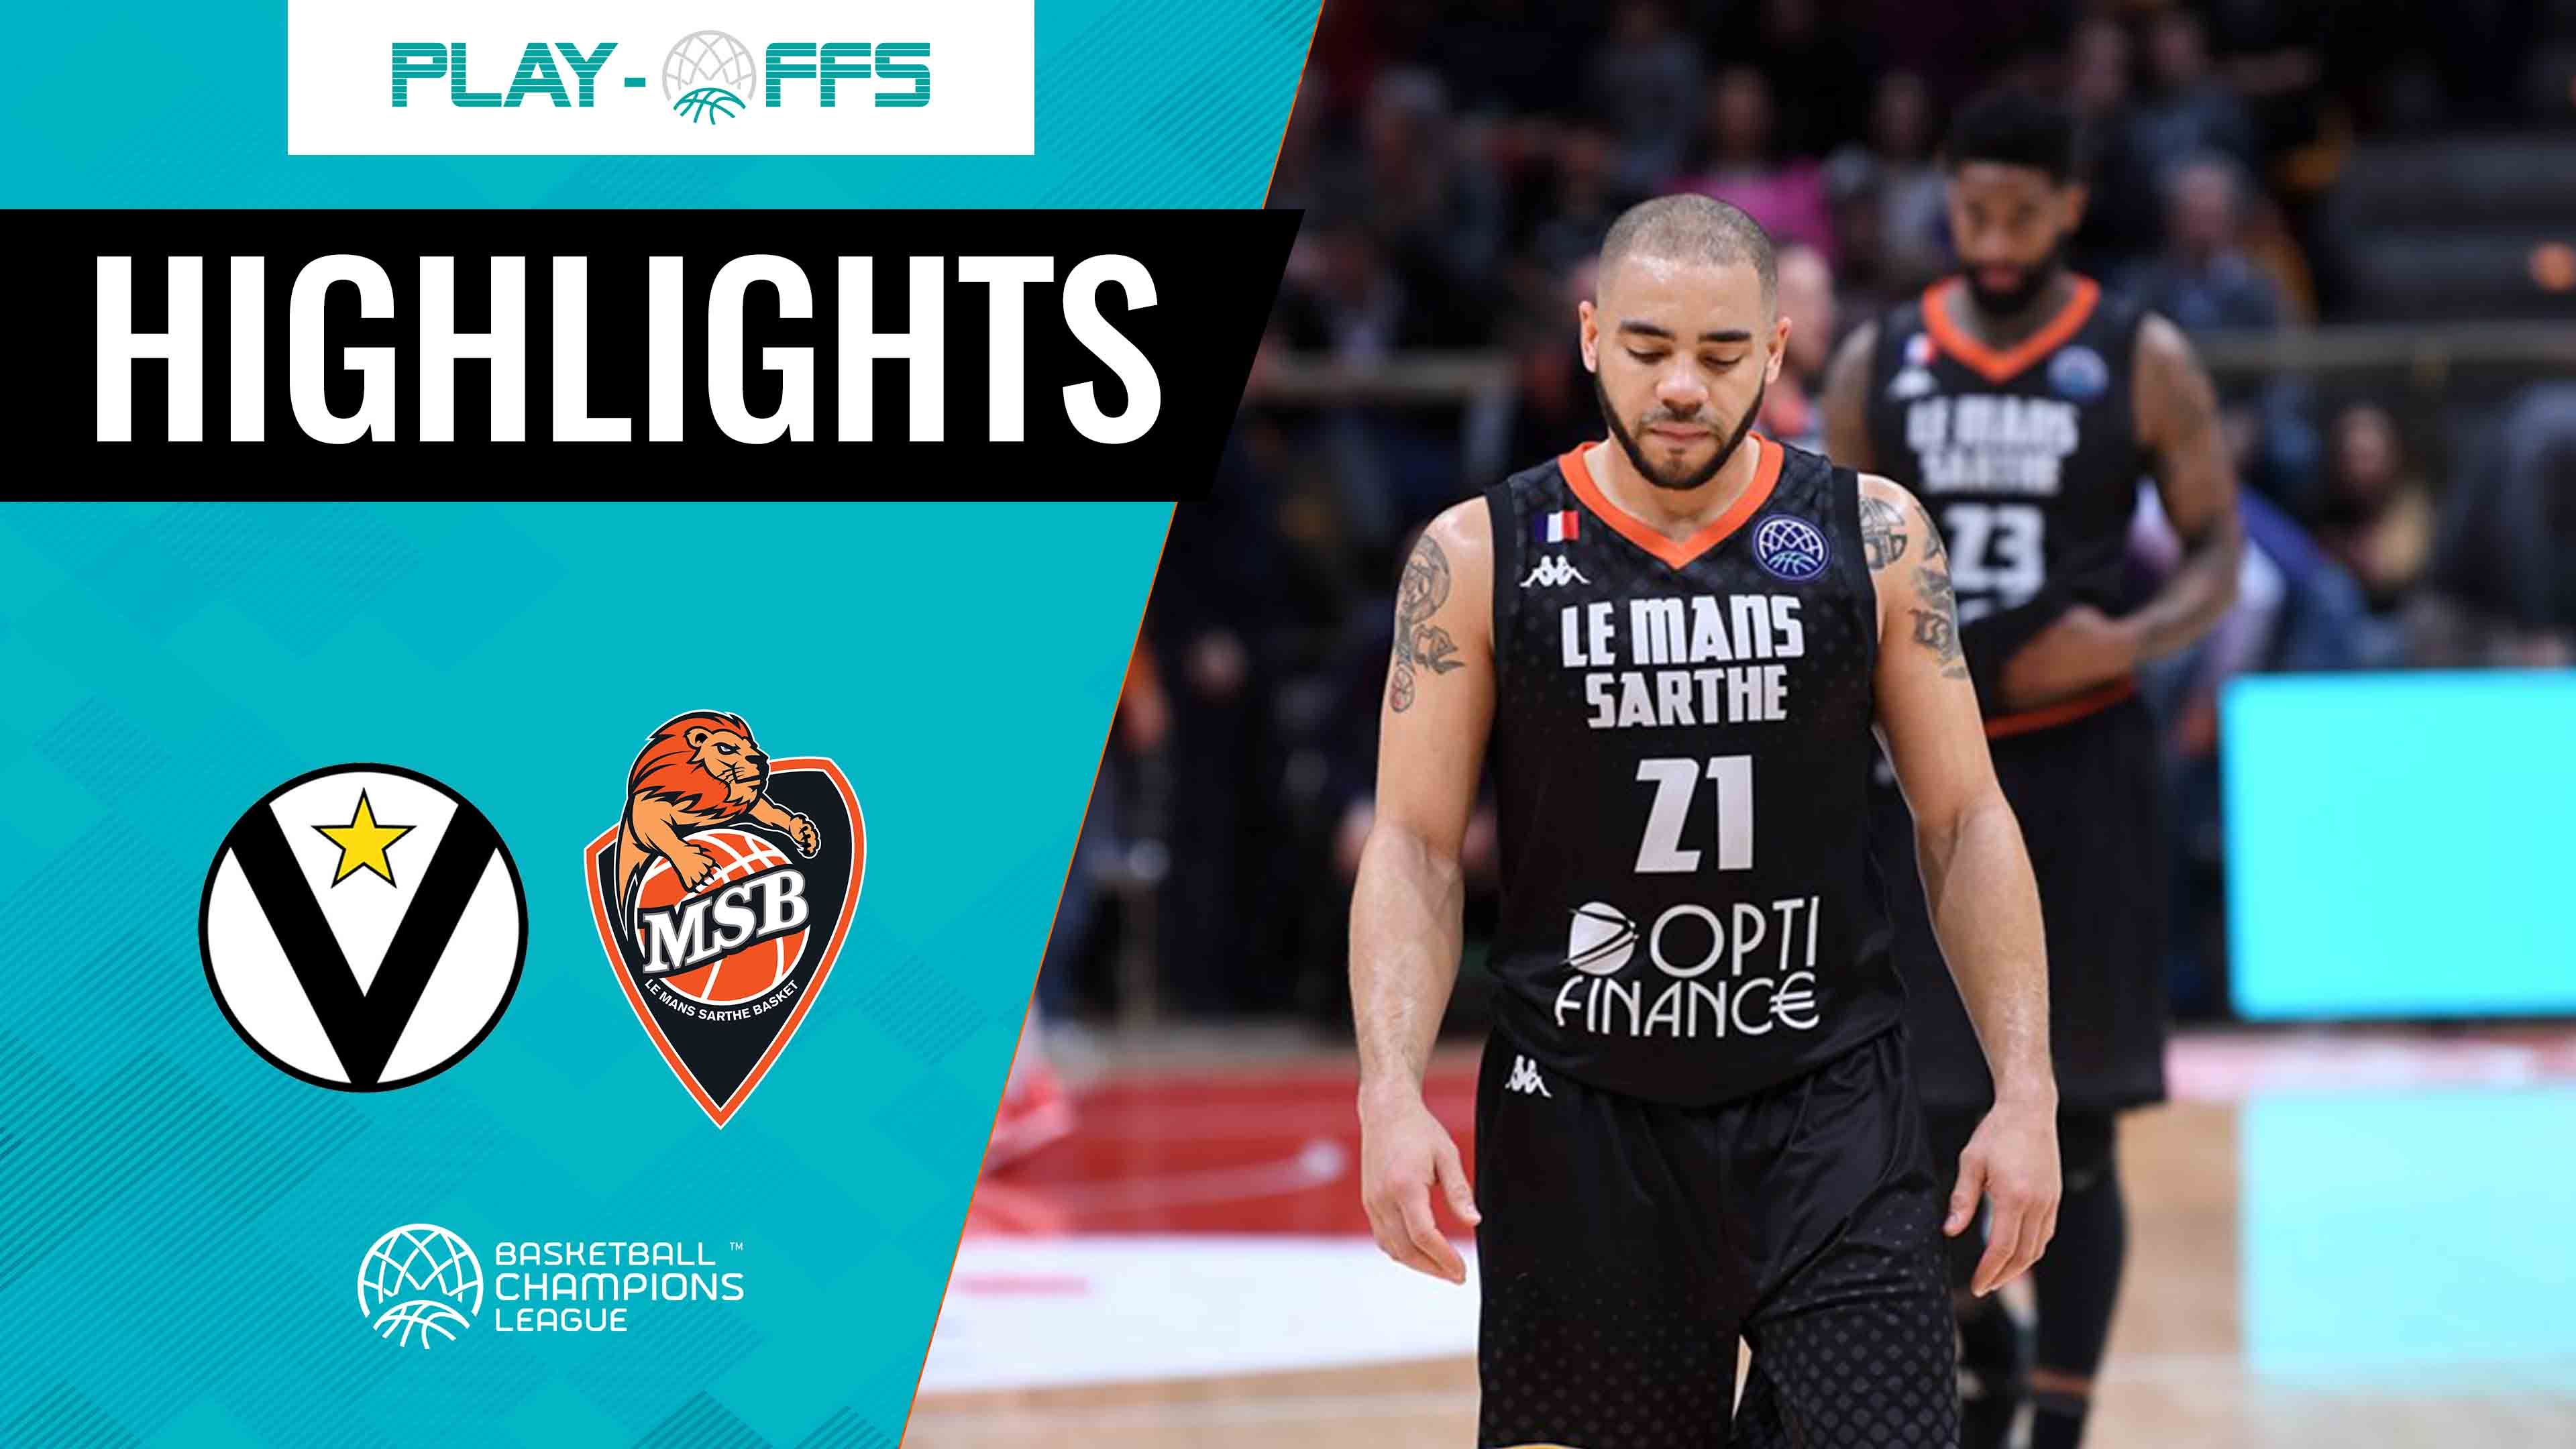 Bologne vs. MSB | Highlights